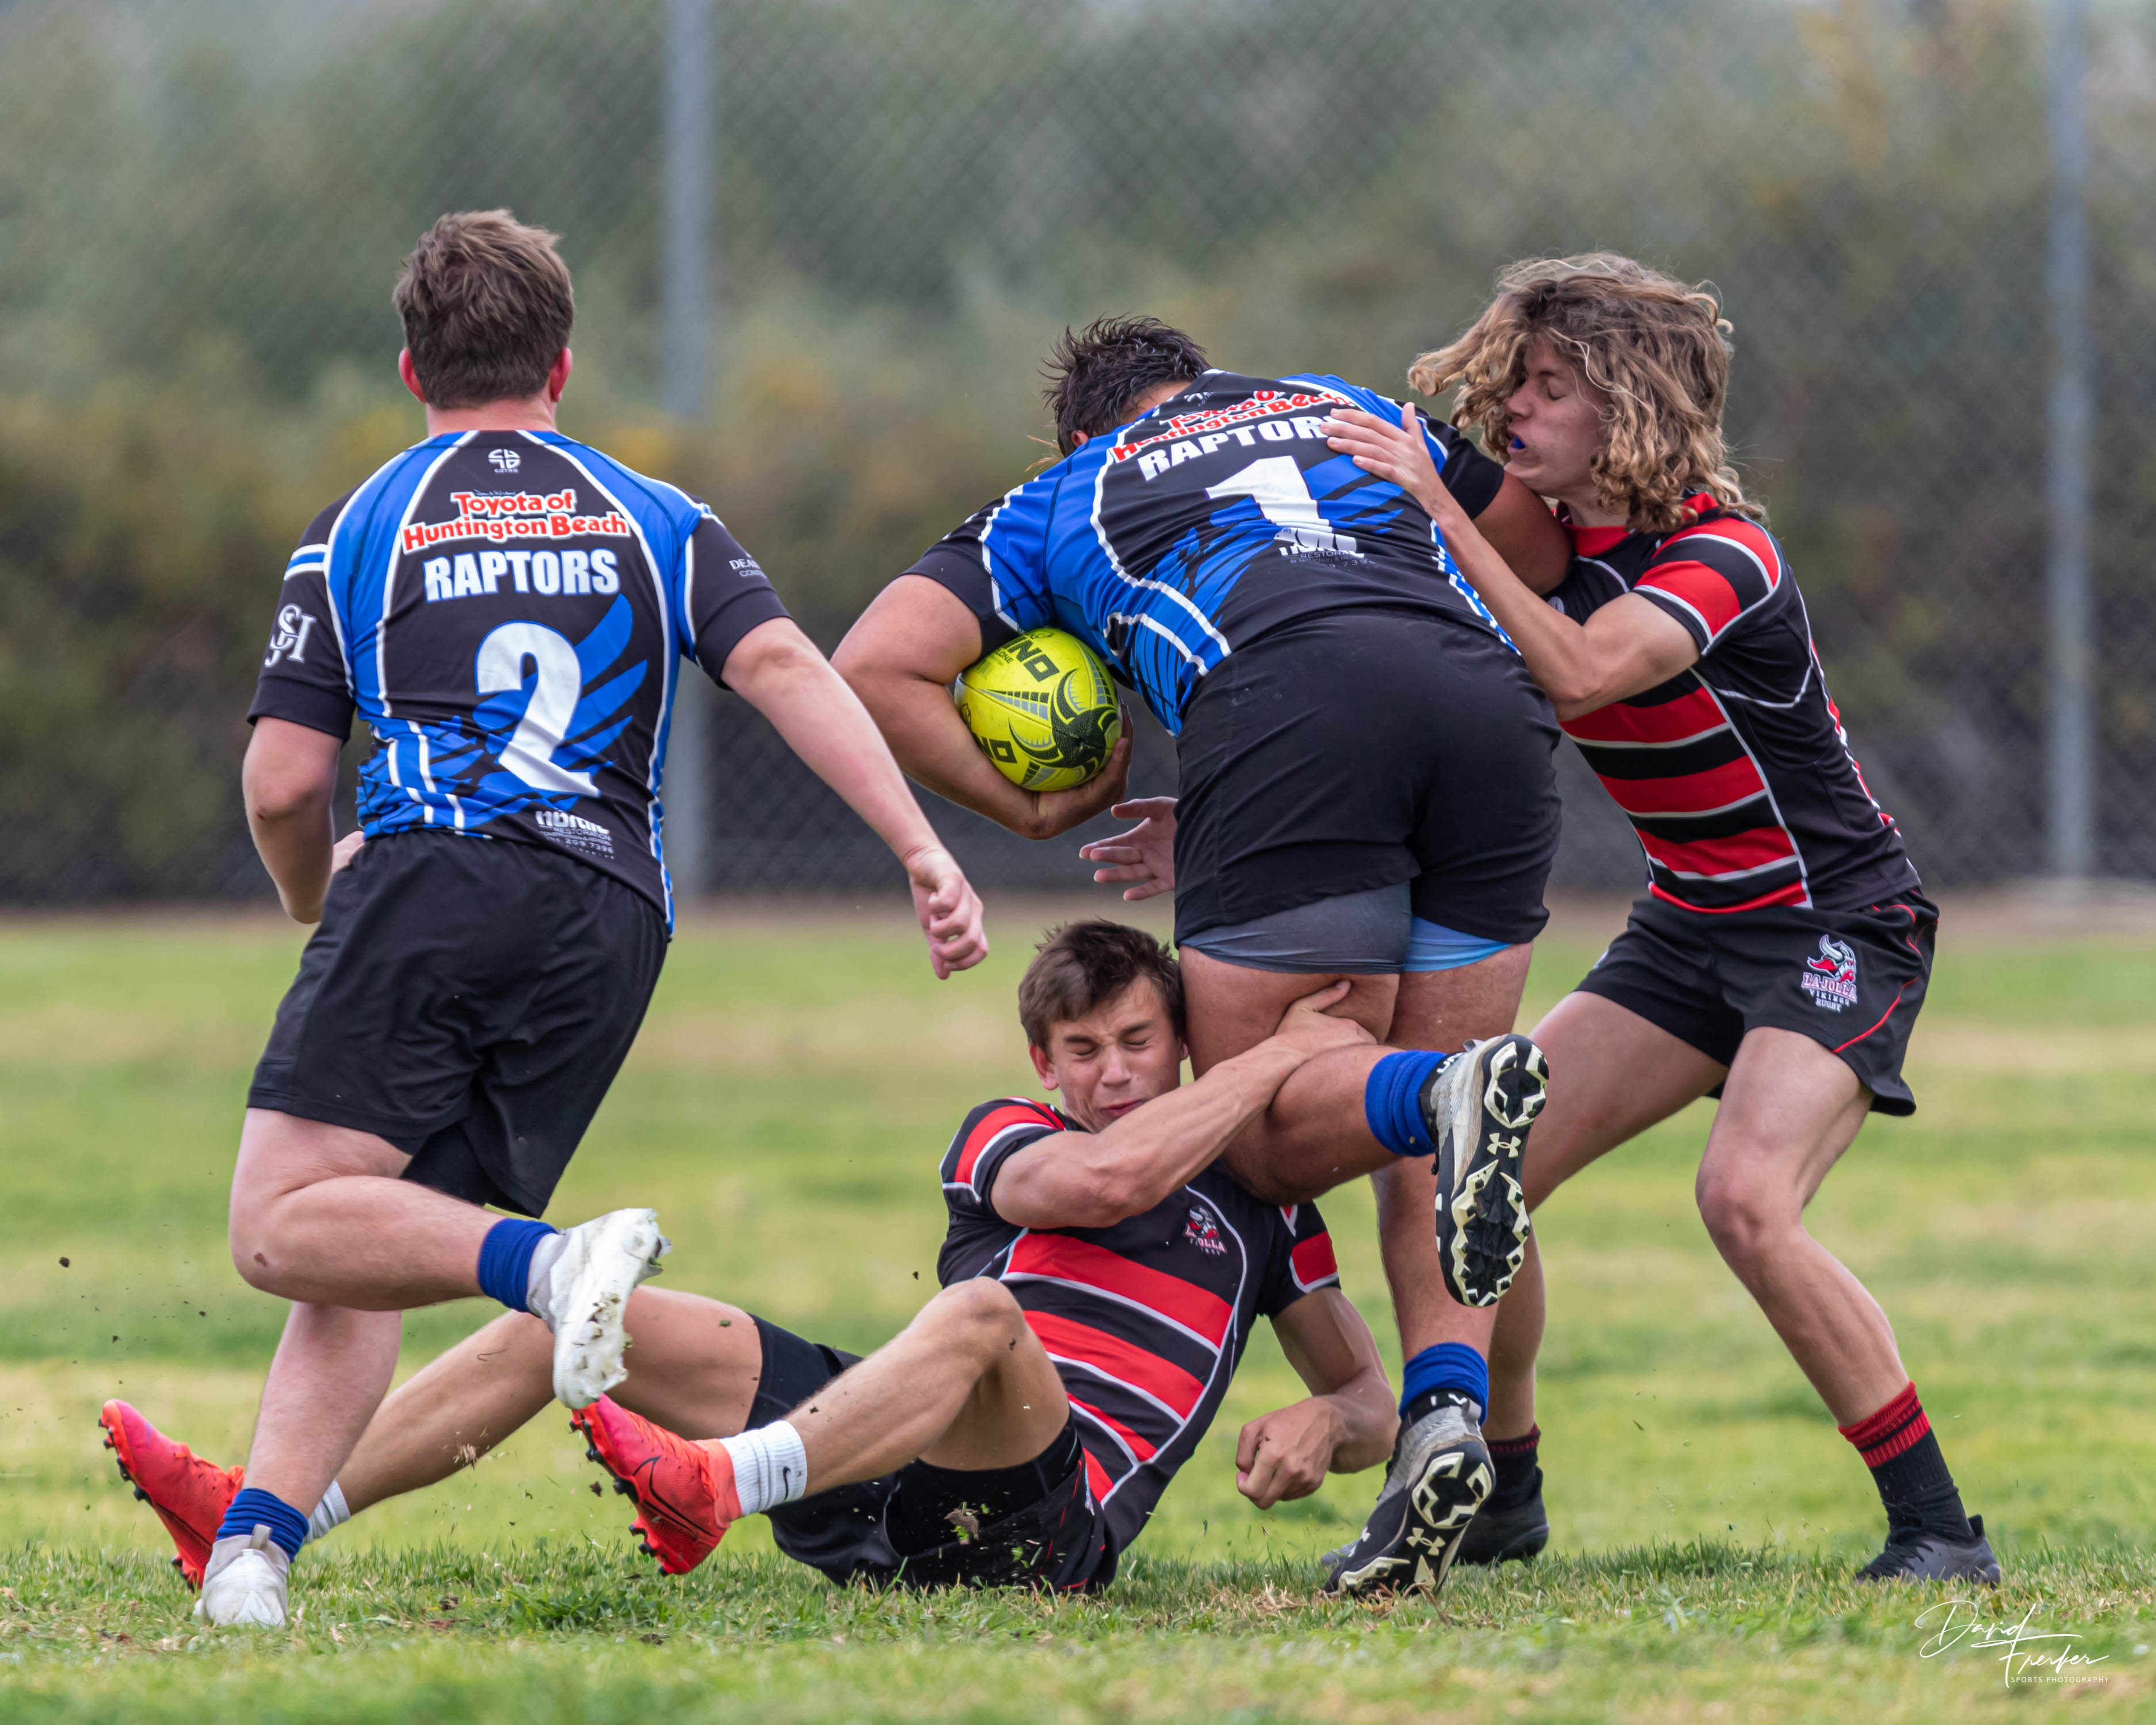 LaJollaRugby41